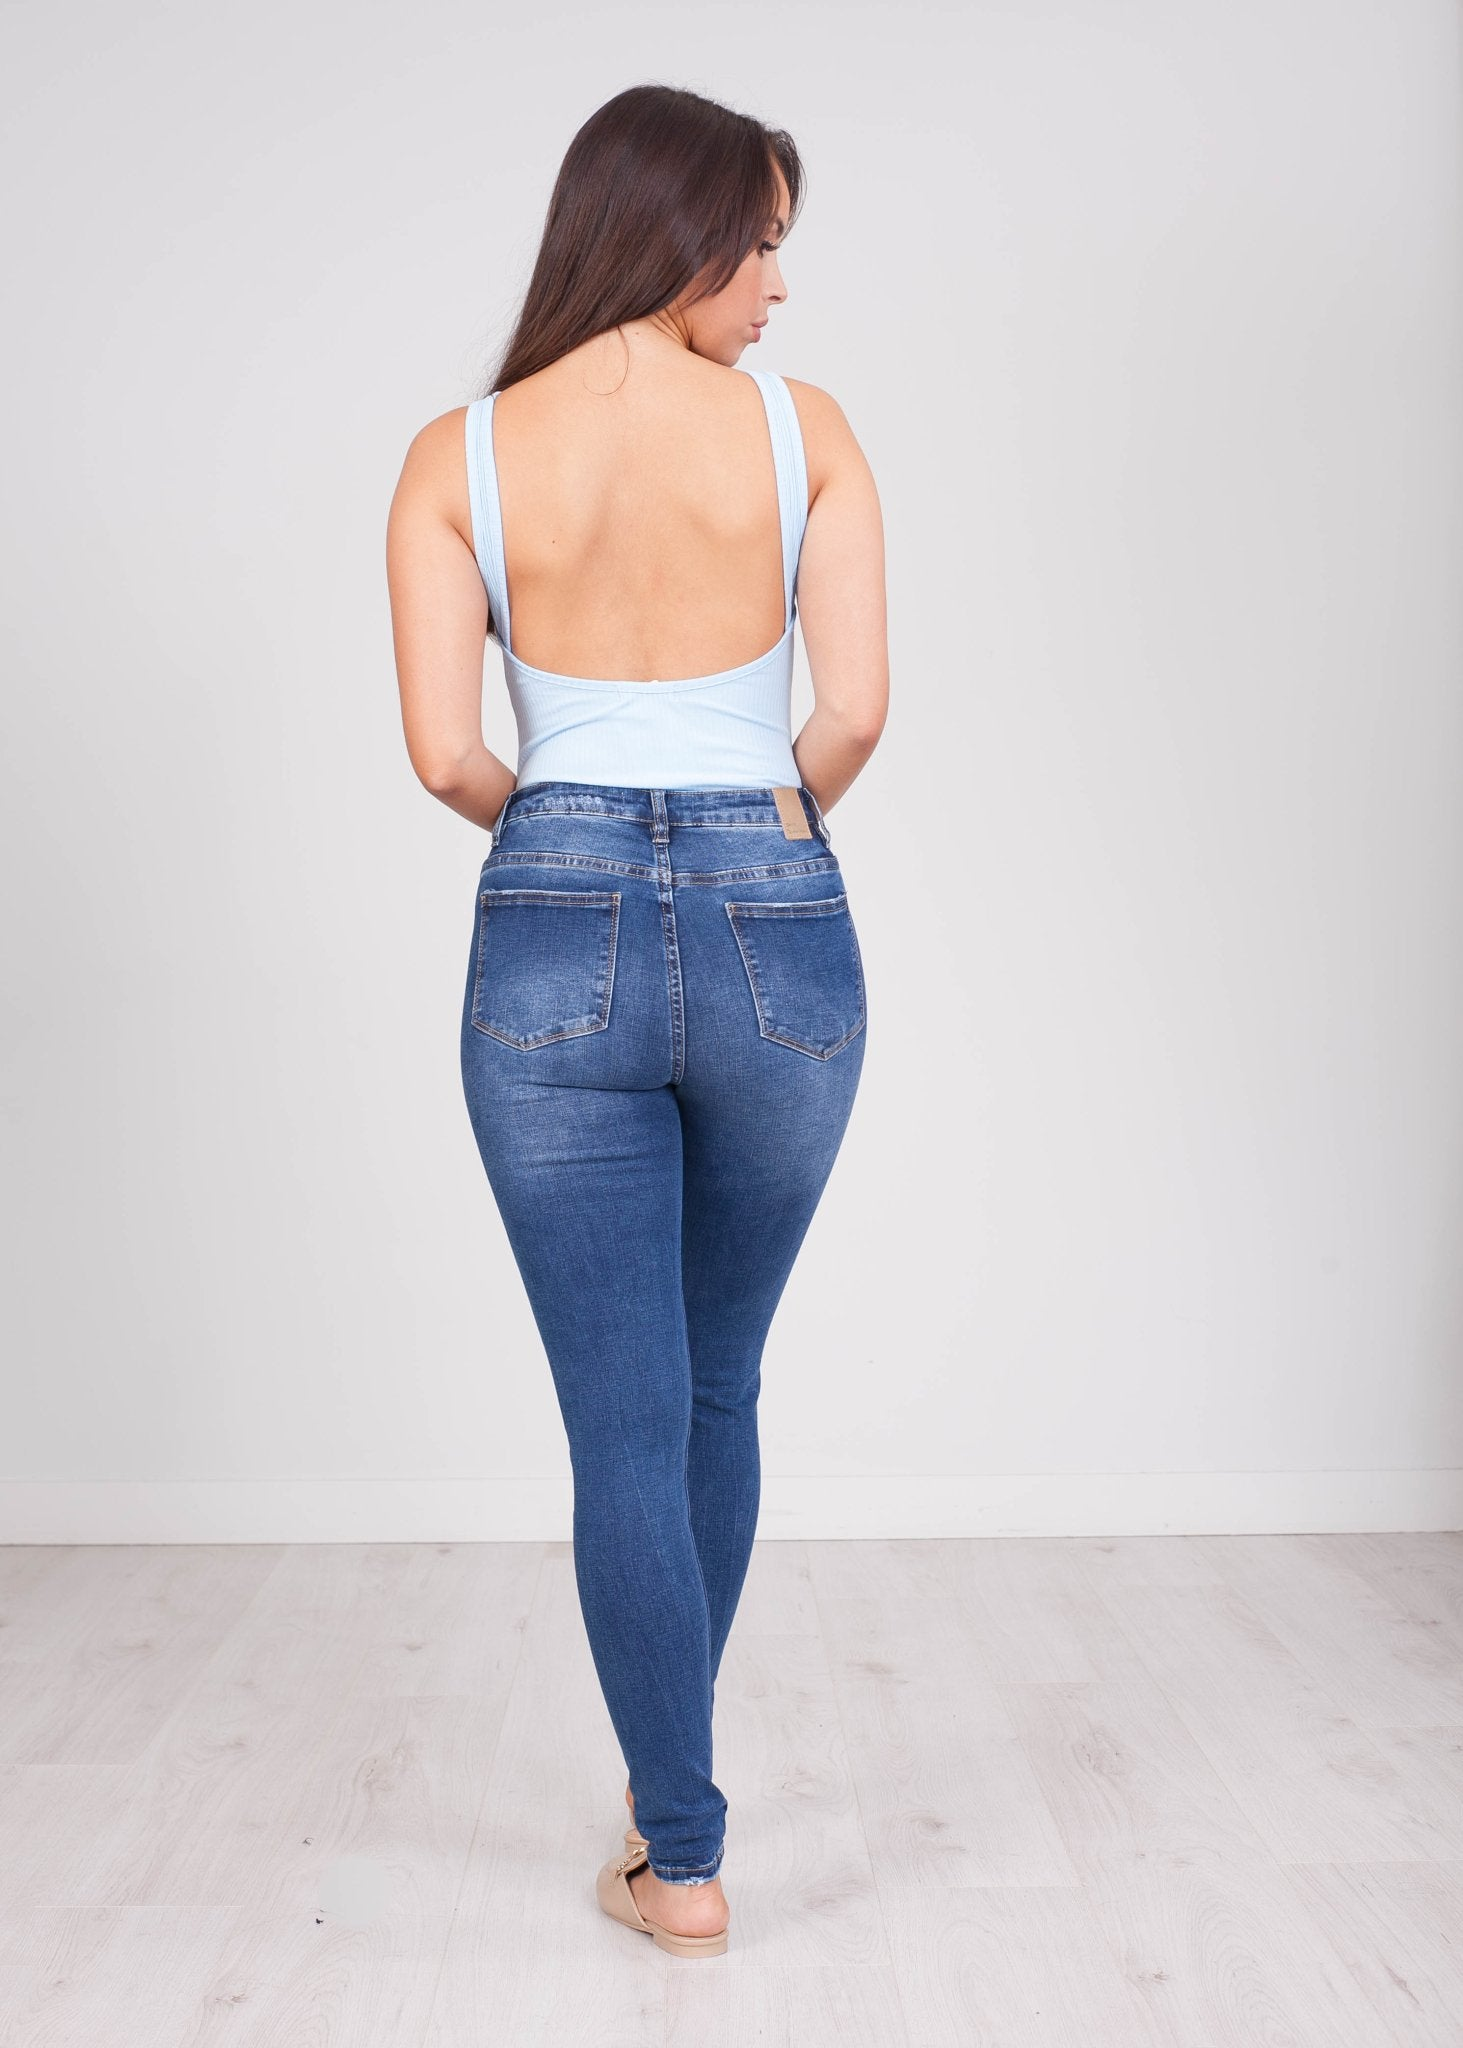 Emilia Blue Low Back Bodysuit - The Walk in Wardrobe